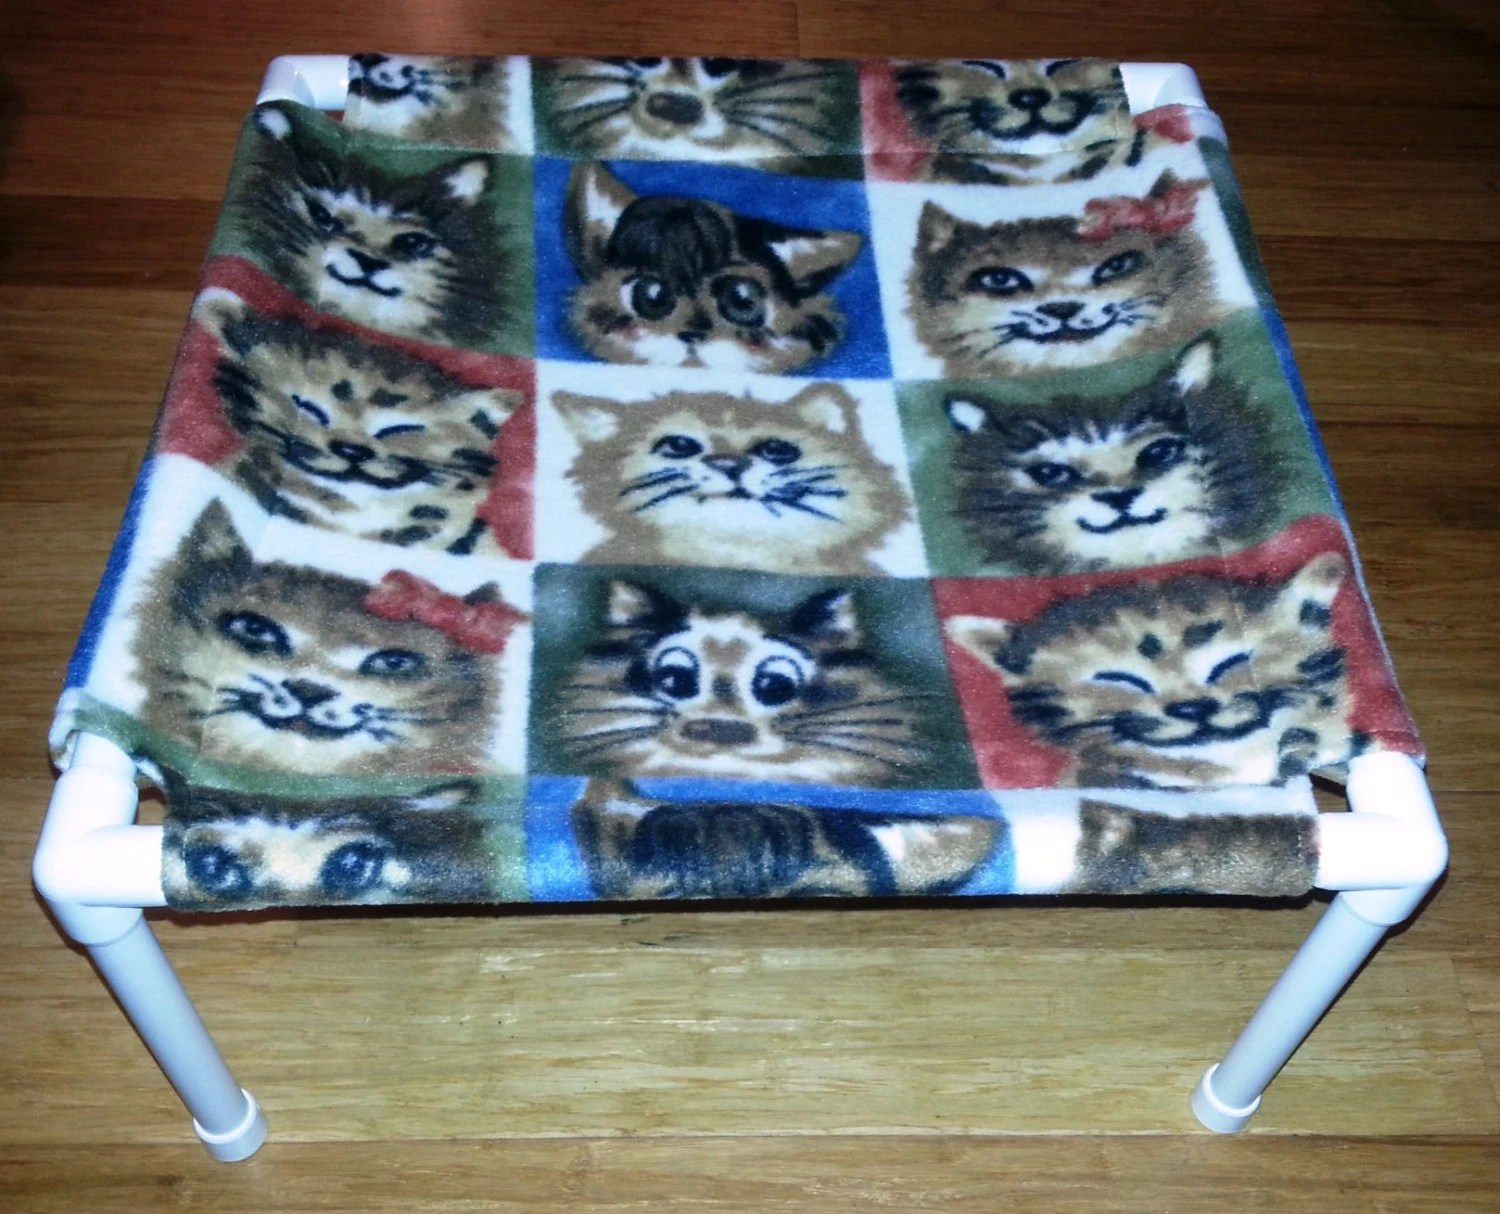 The Pet Hammock Fleece Fabric Cat Faces Pattern